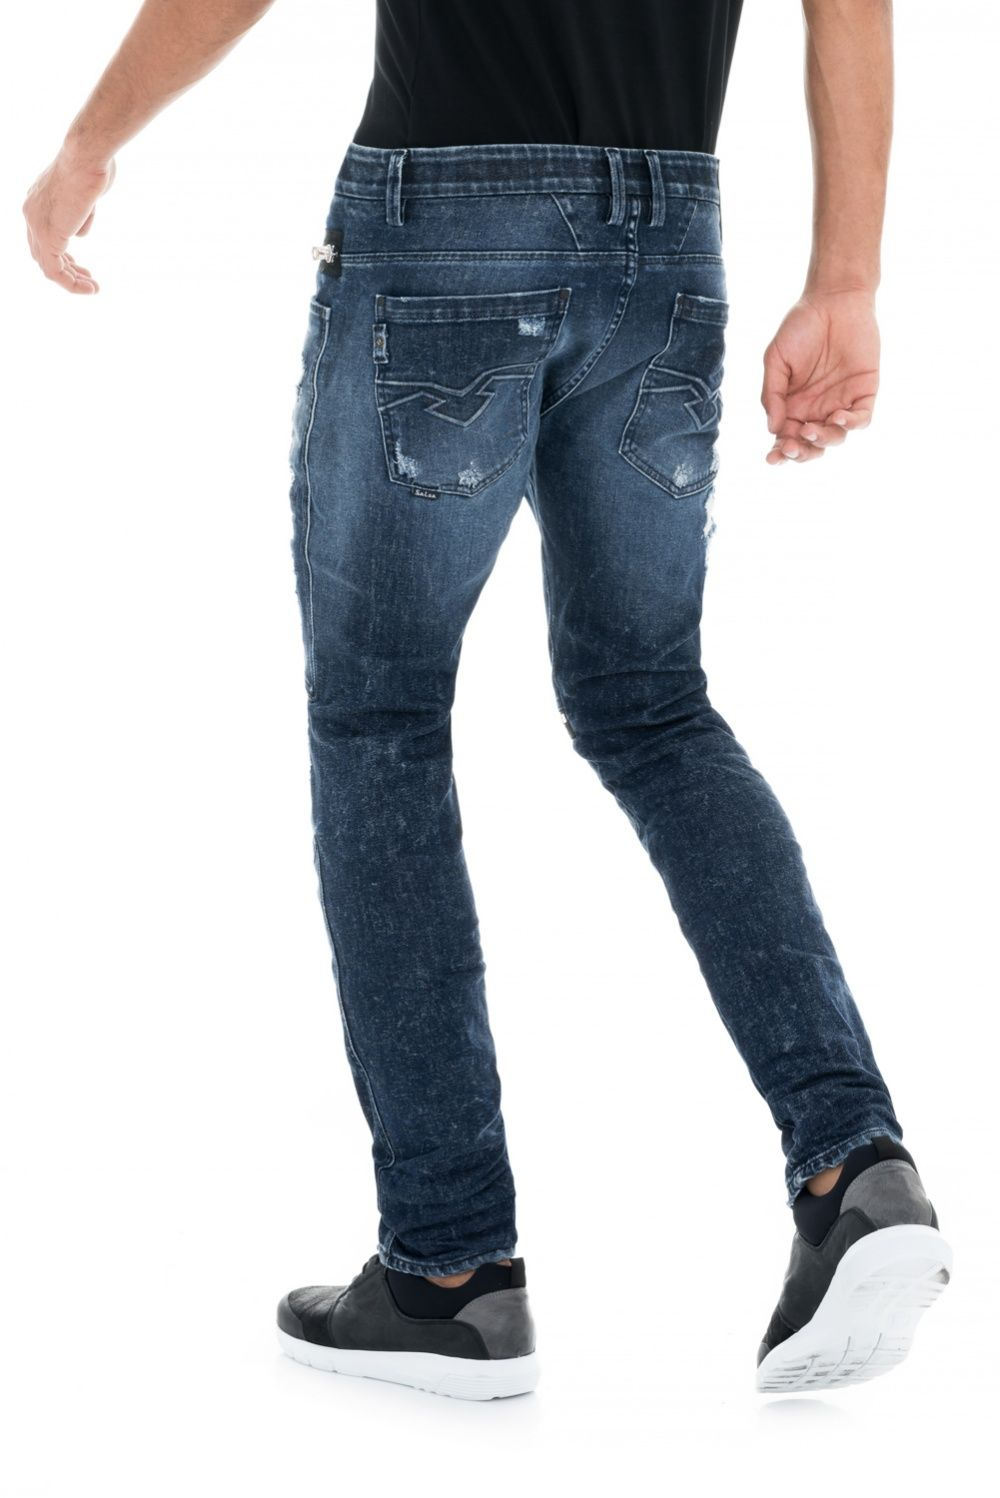 Salsa Jeans - Slim Andy pants with laundry effects